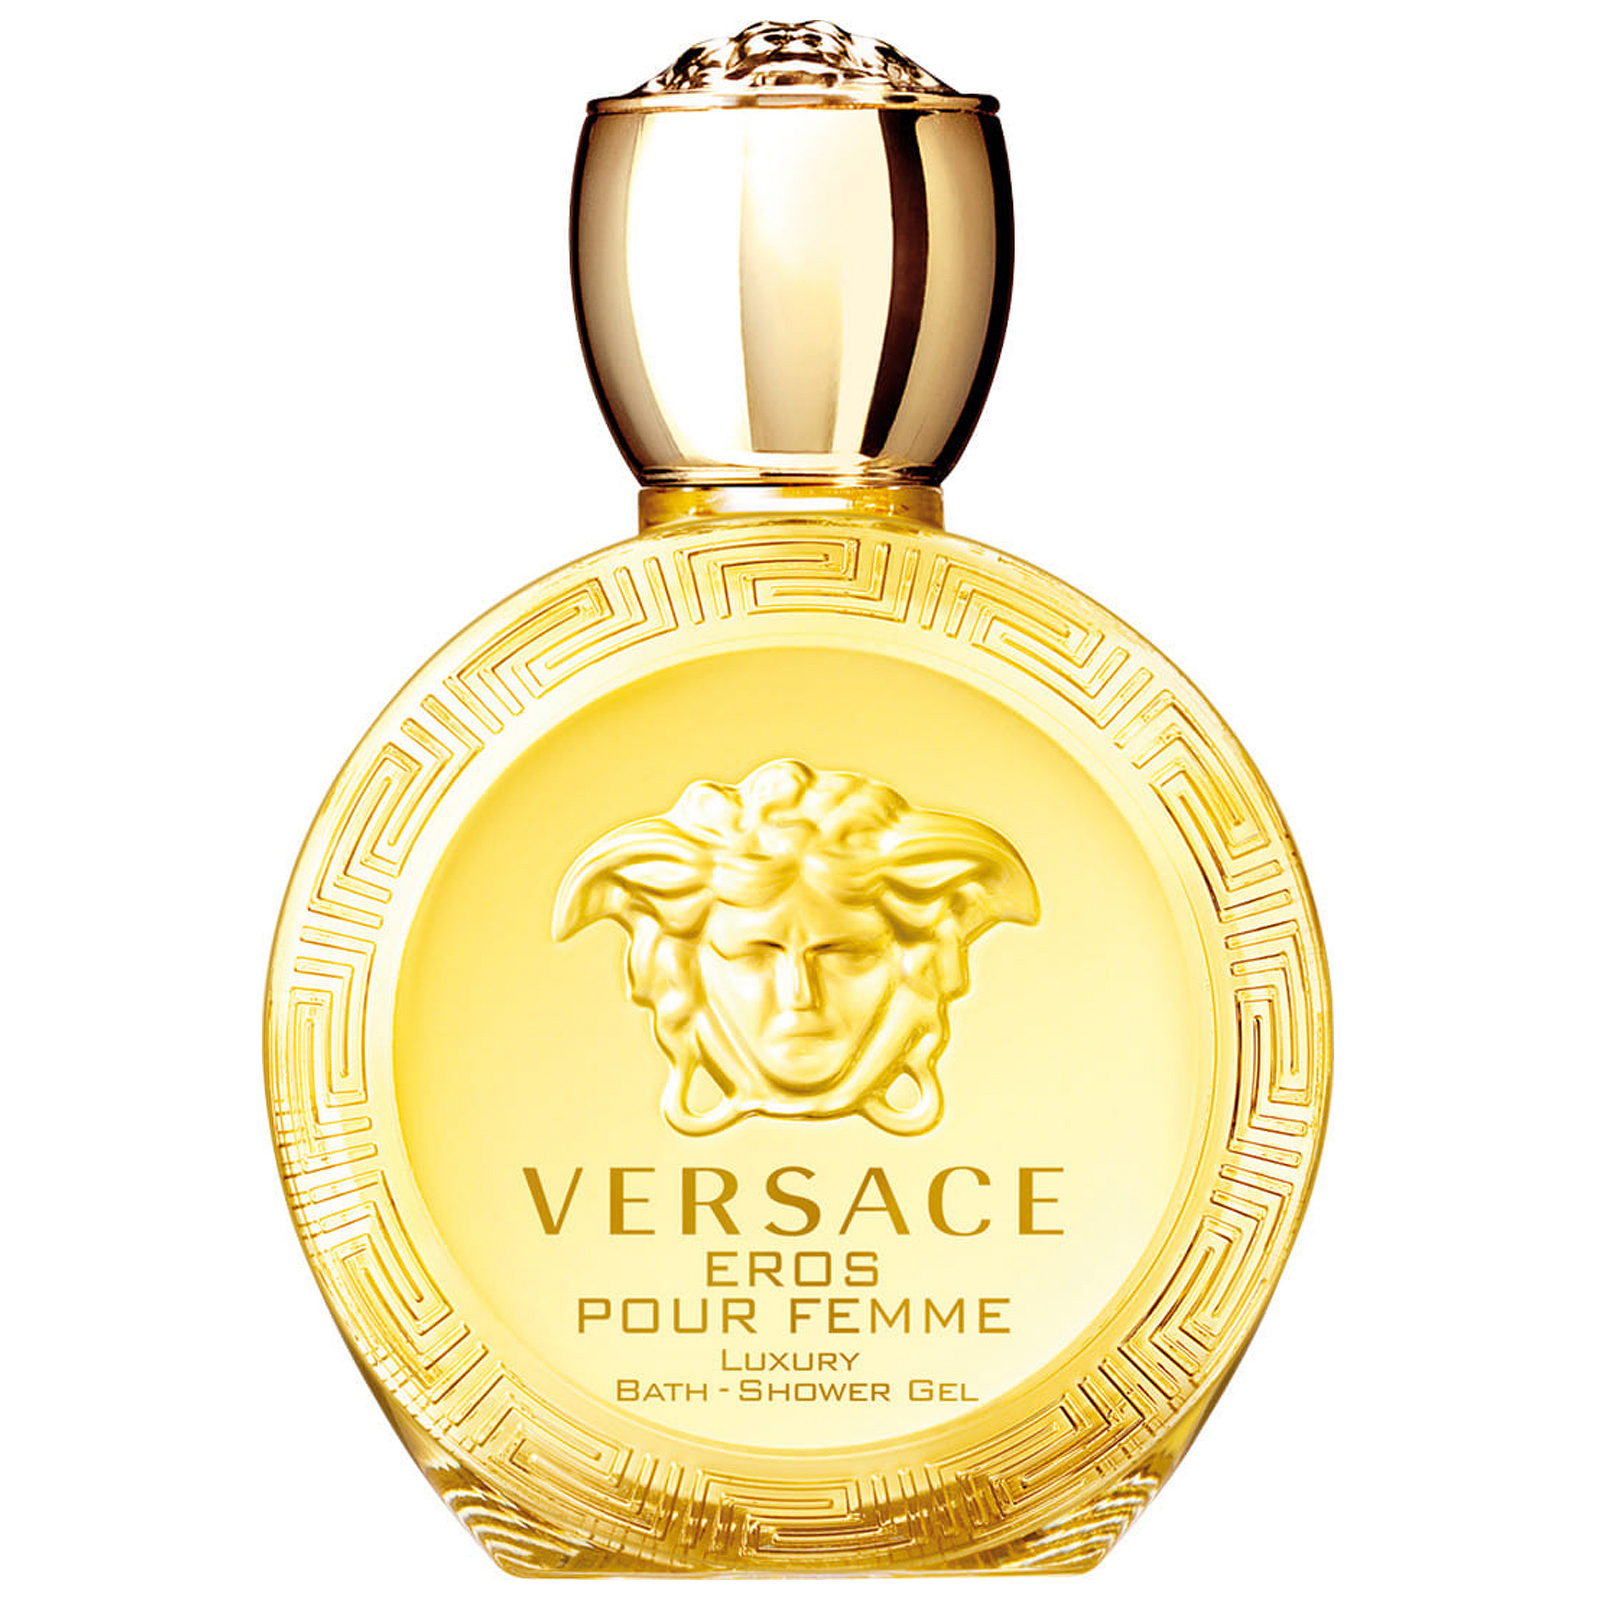 Versace Eros Pour Femme Luxury Bath and Shower Gel 200ml